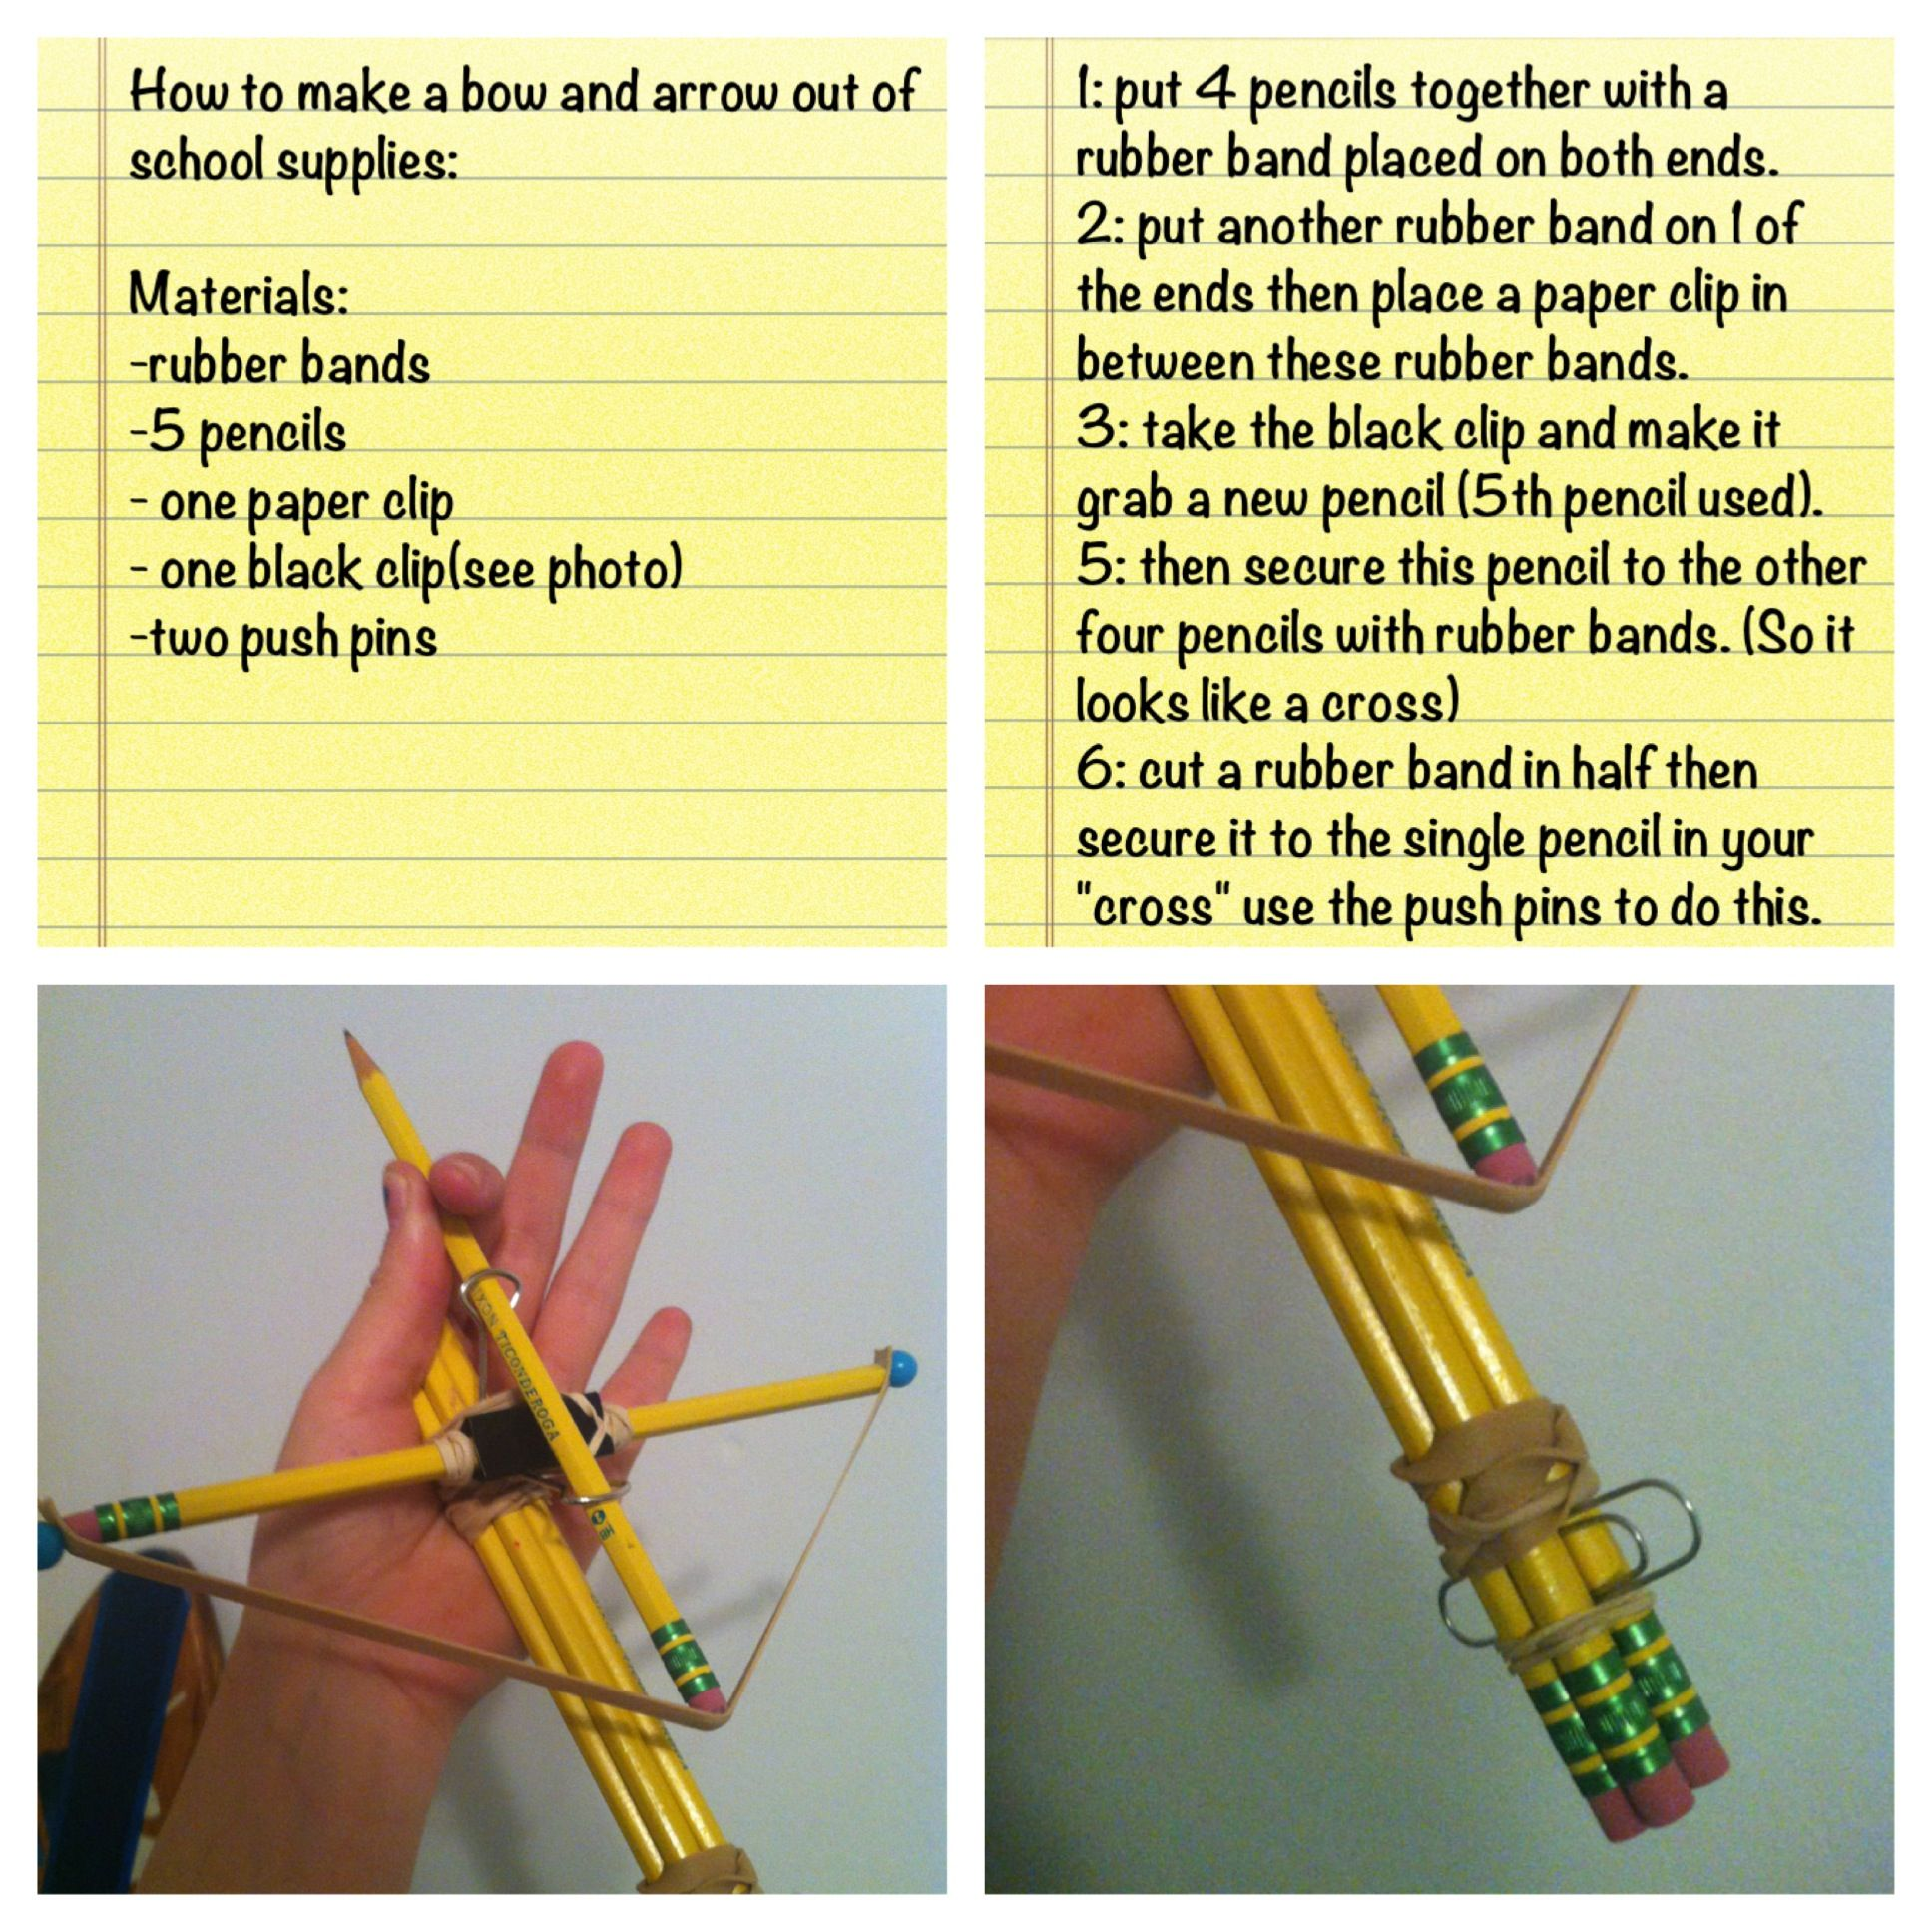 how to make arrows for a bow and arrow